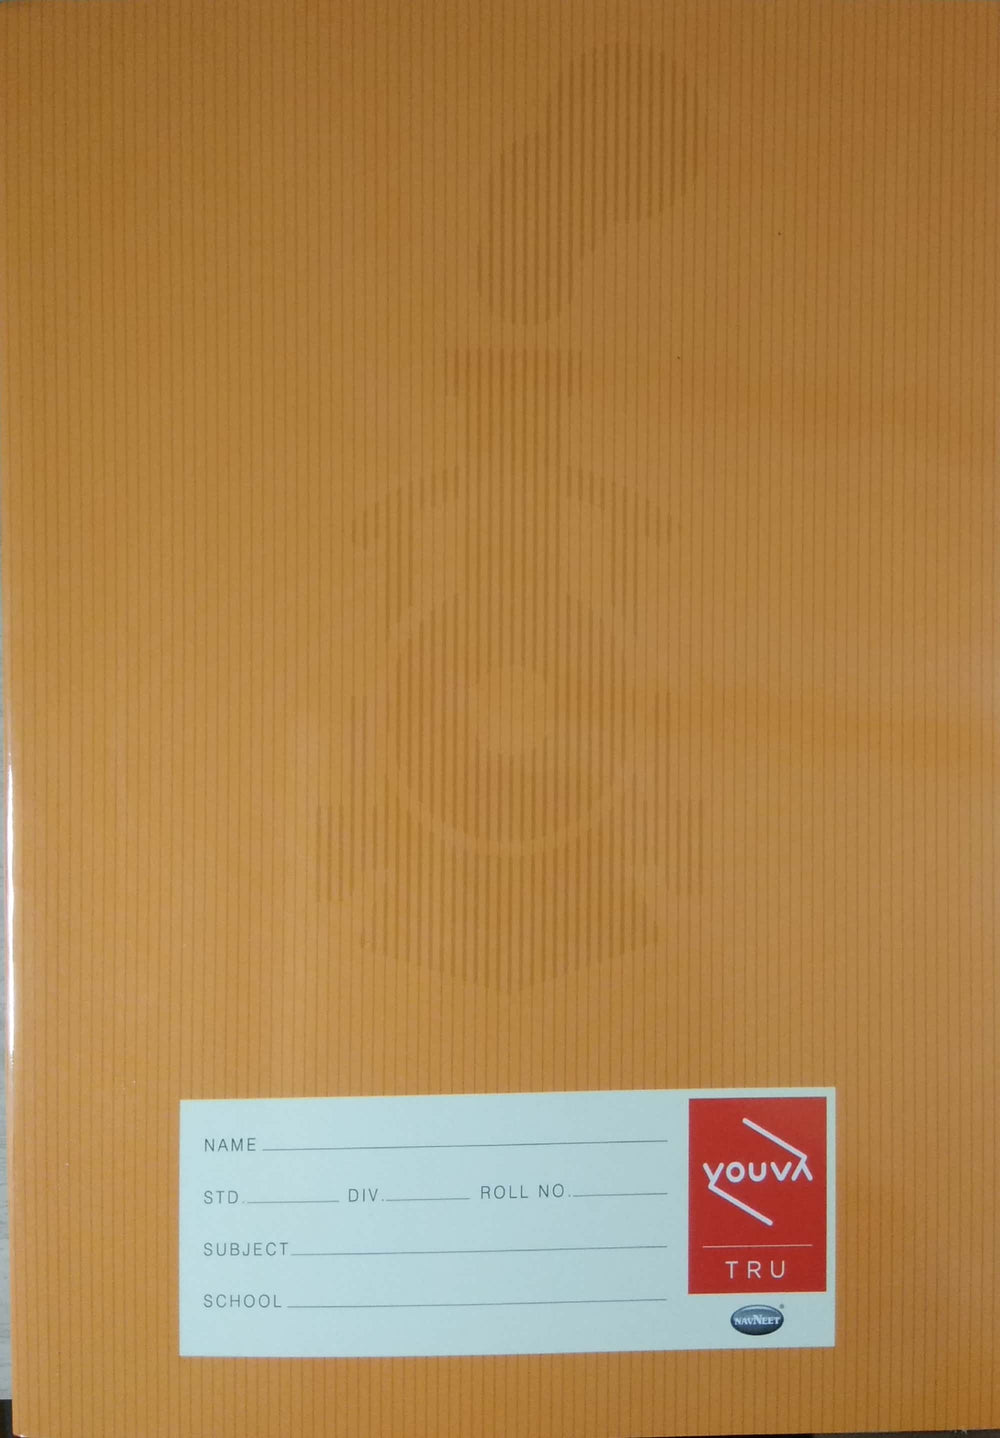 Youva Brown Note Book Jumbo Size – Medium Square (172 Pages)